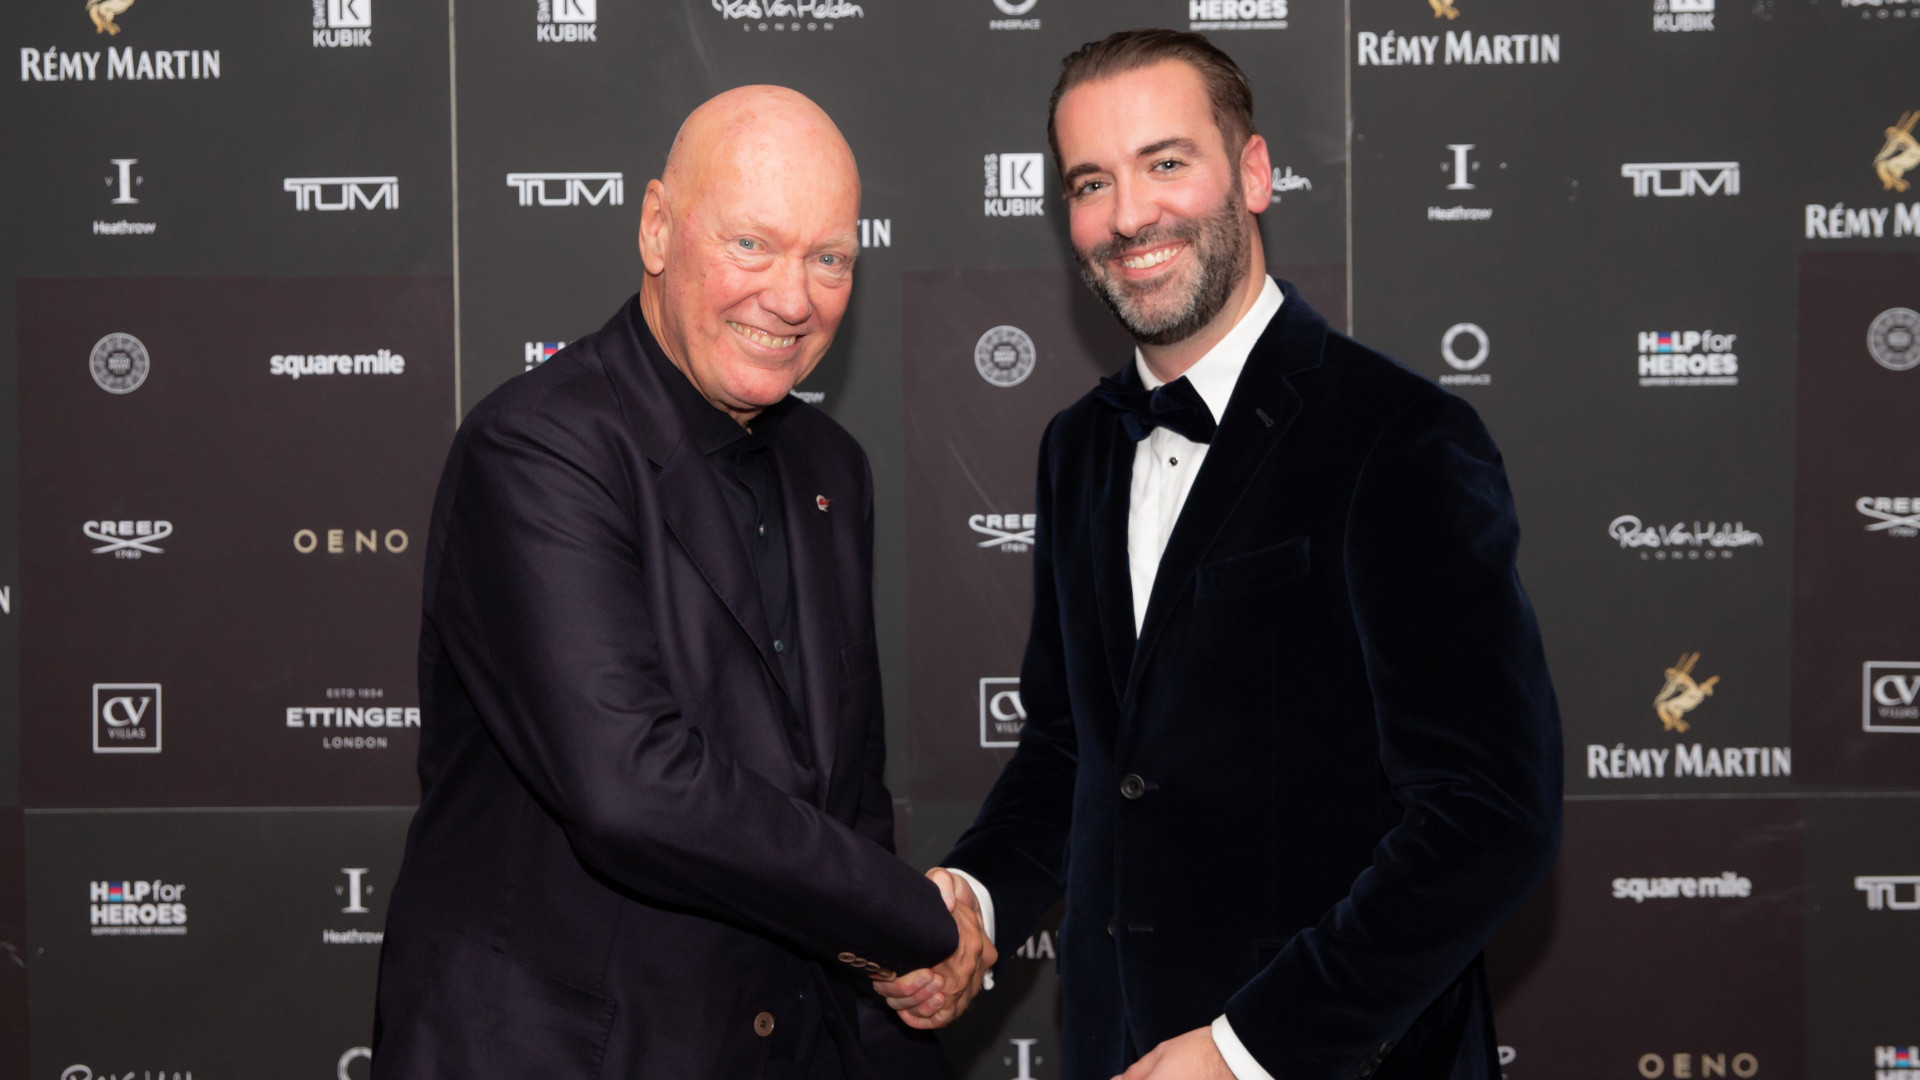 Jean-Claude Biver Square Mile Watch Awards 2019